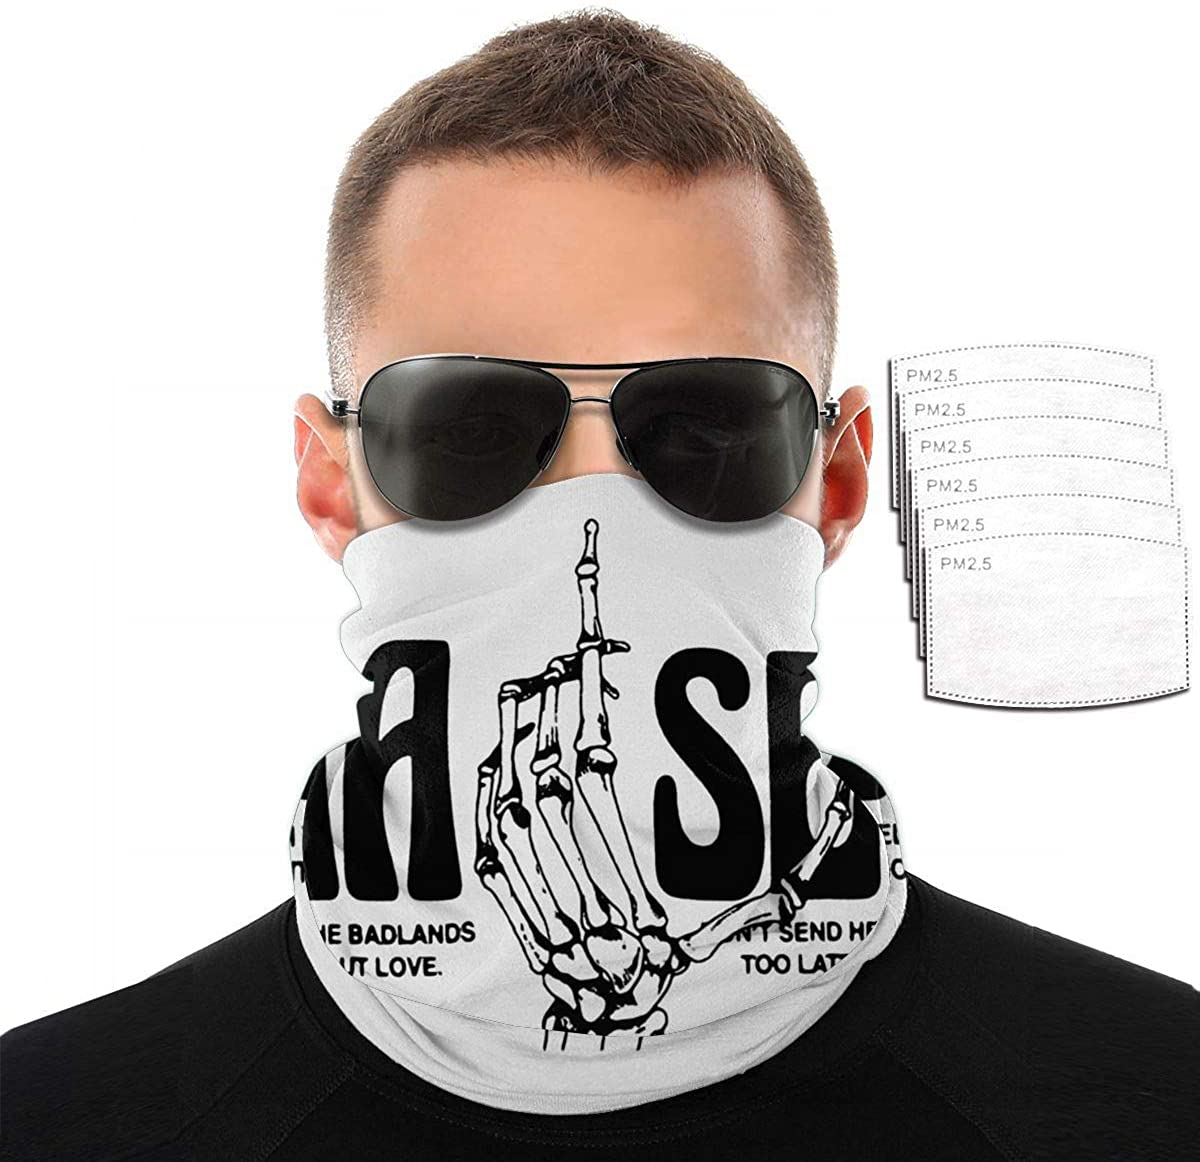 Halsey Scarf Bandanas Neck Gaiter With Safety Carbon Filters